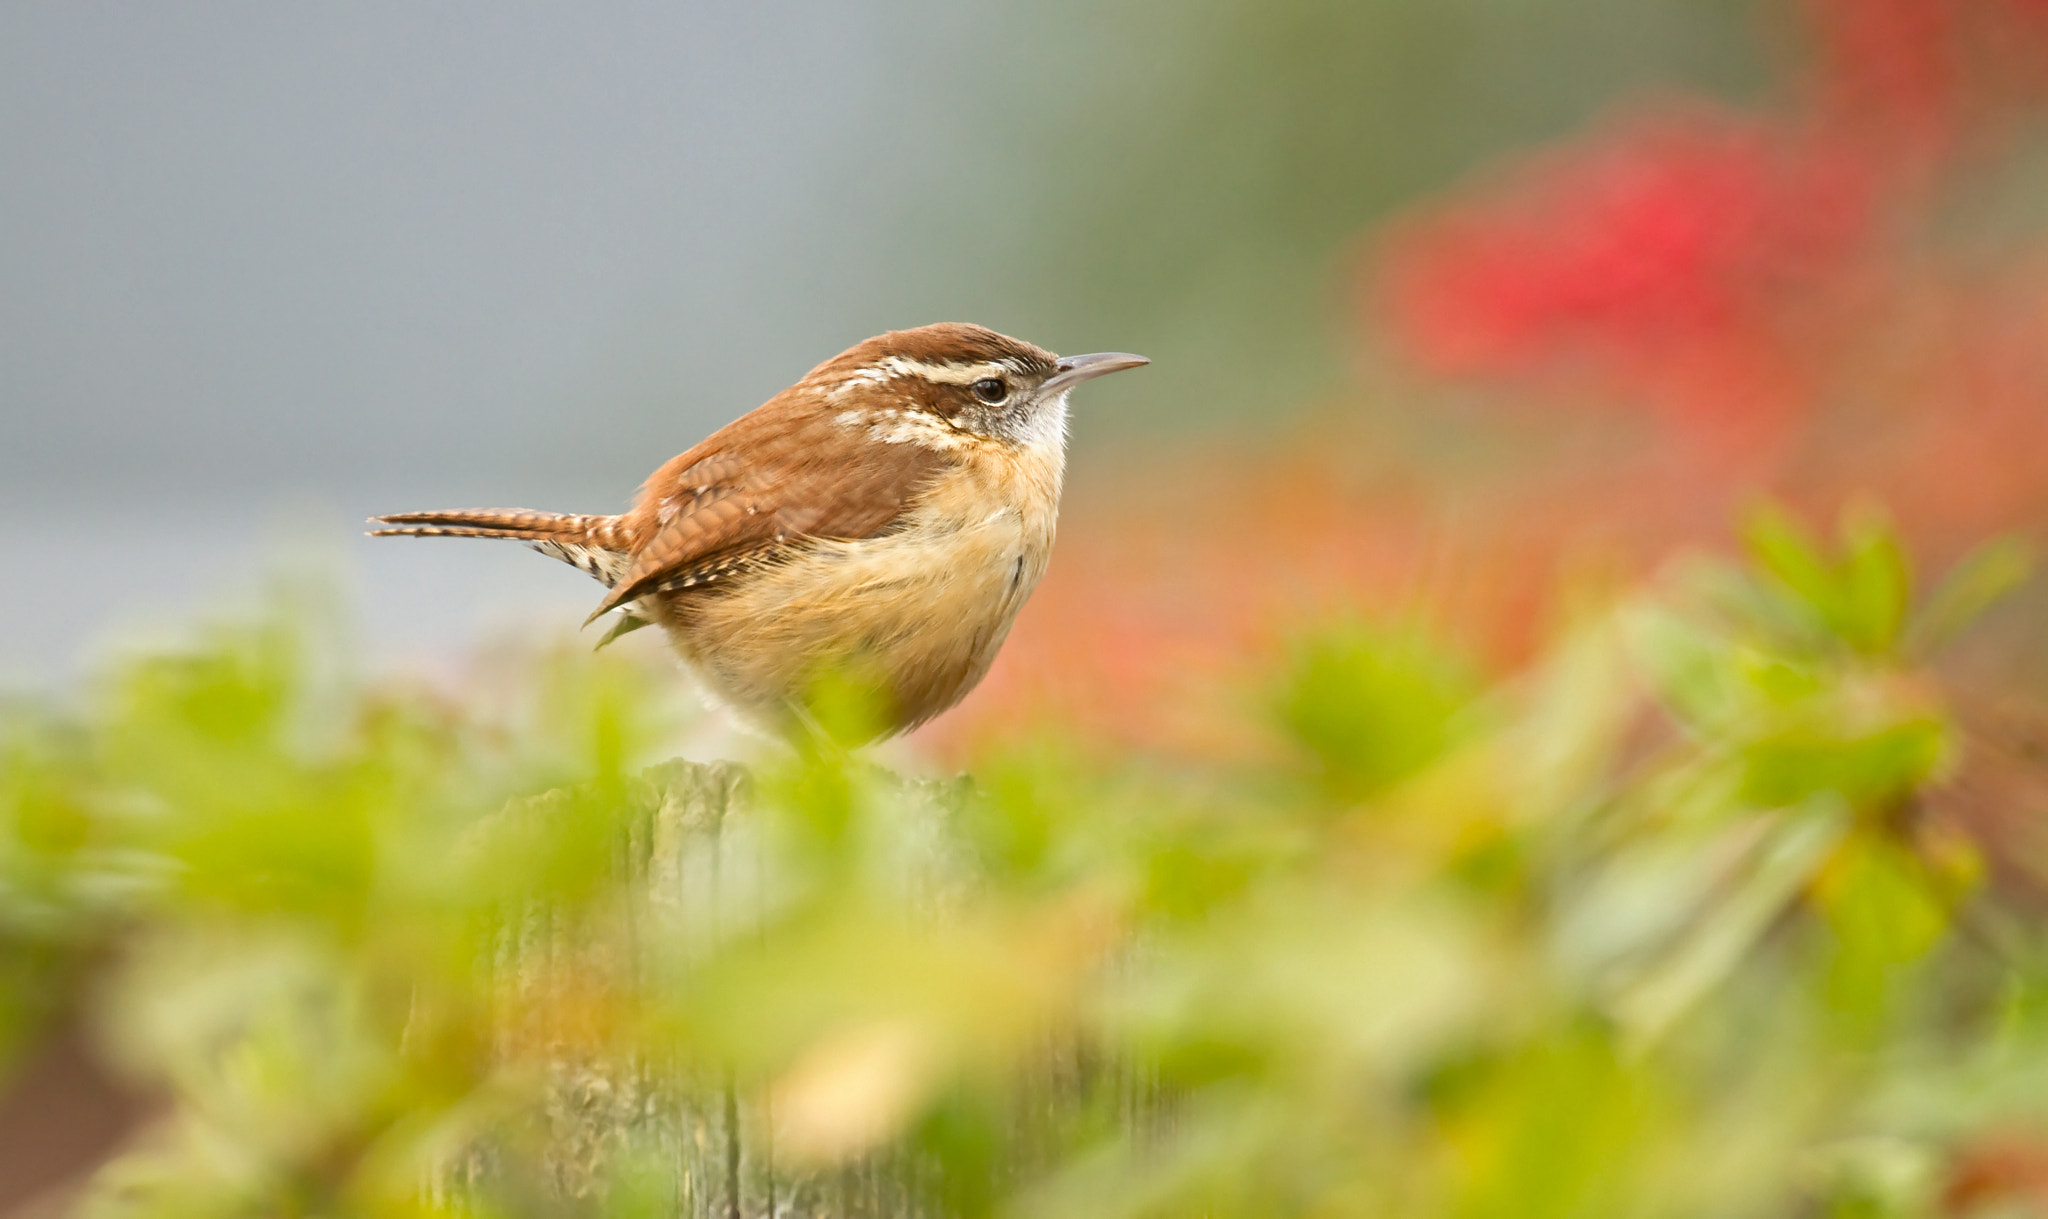 Photograph Little Wren in the Garden by Lorraine Hudgins on 500px